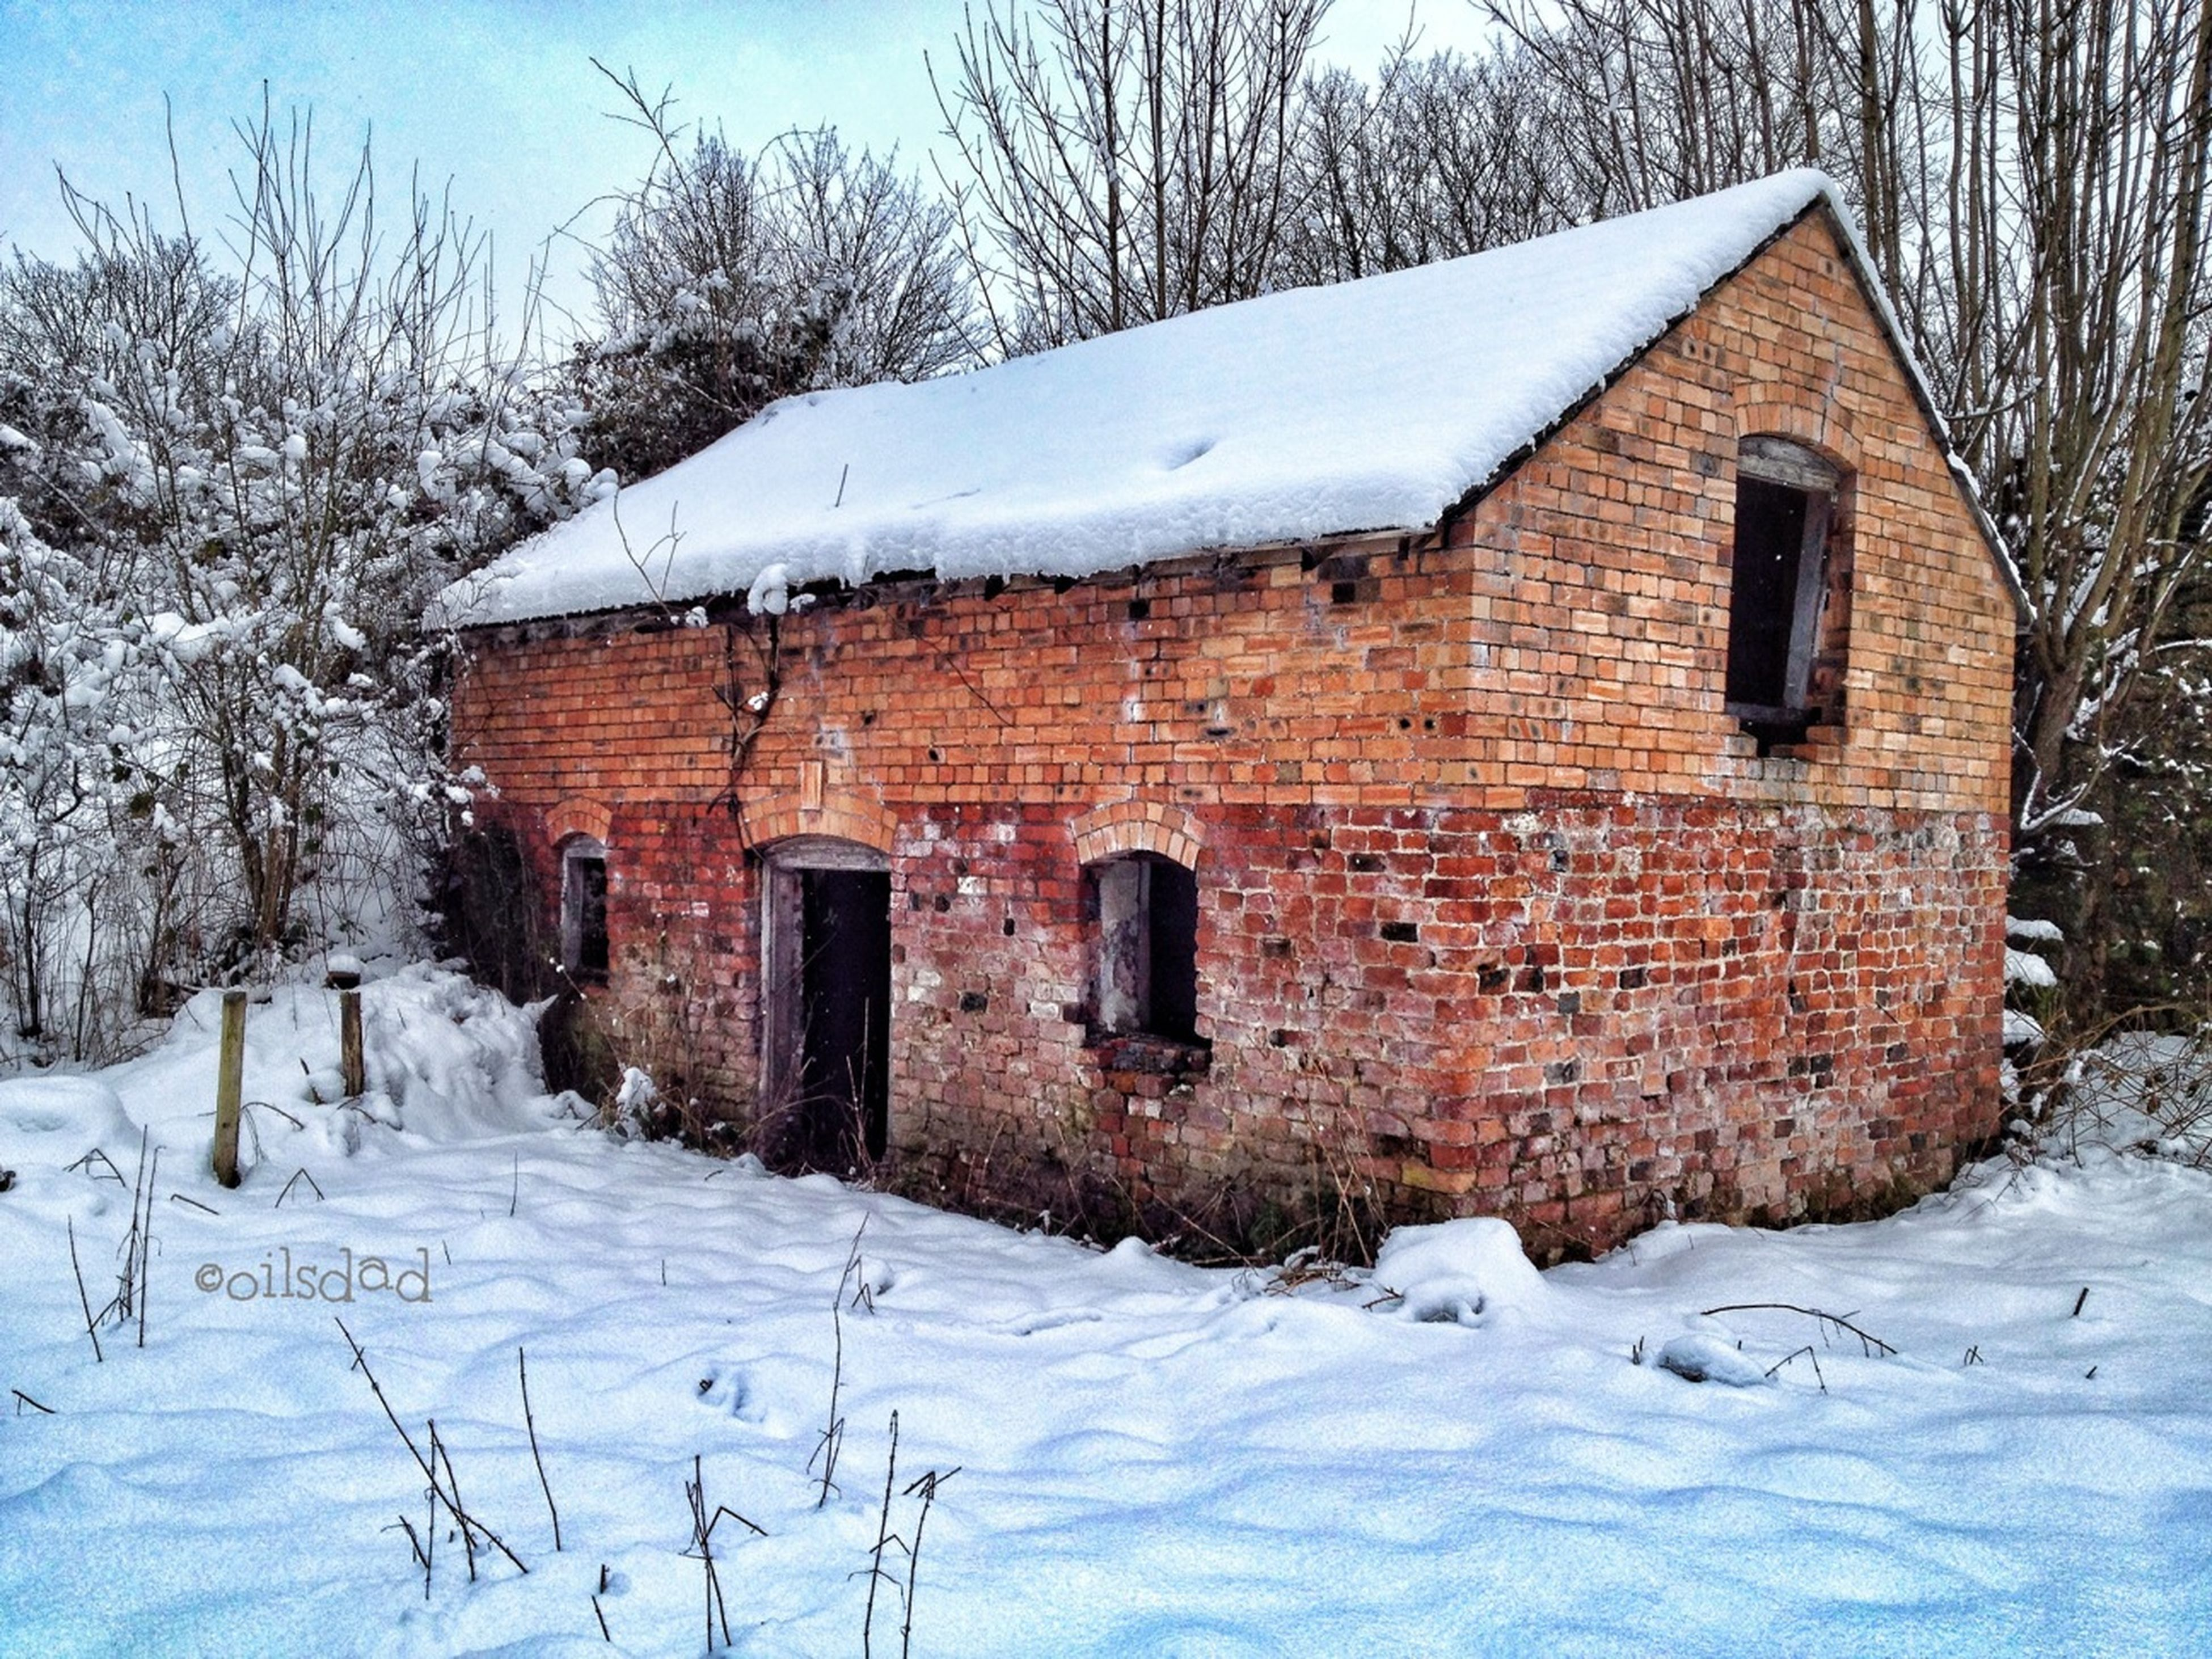 snow, winter, cold temperature, season, building exterior, architecture, built structure, weather, covering, house, bare tree, frozen, white color, covered, residential structure, tree, nature, field, residential building, outdoors